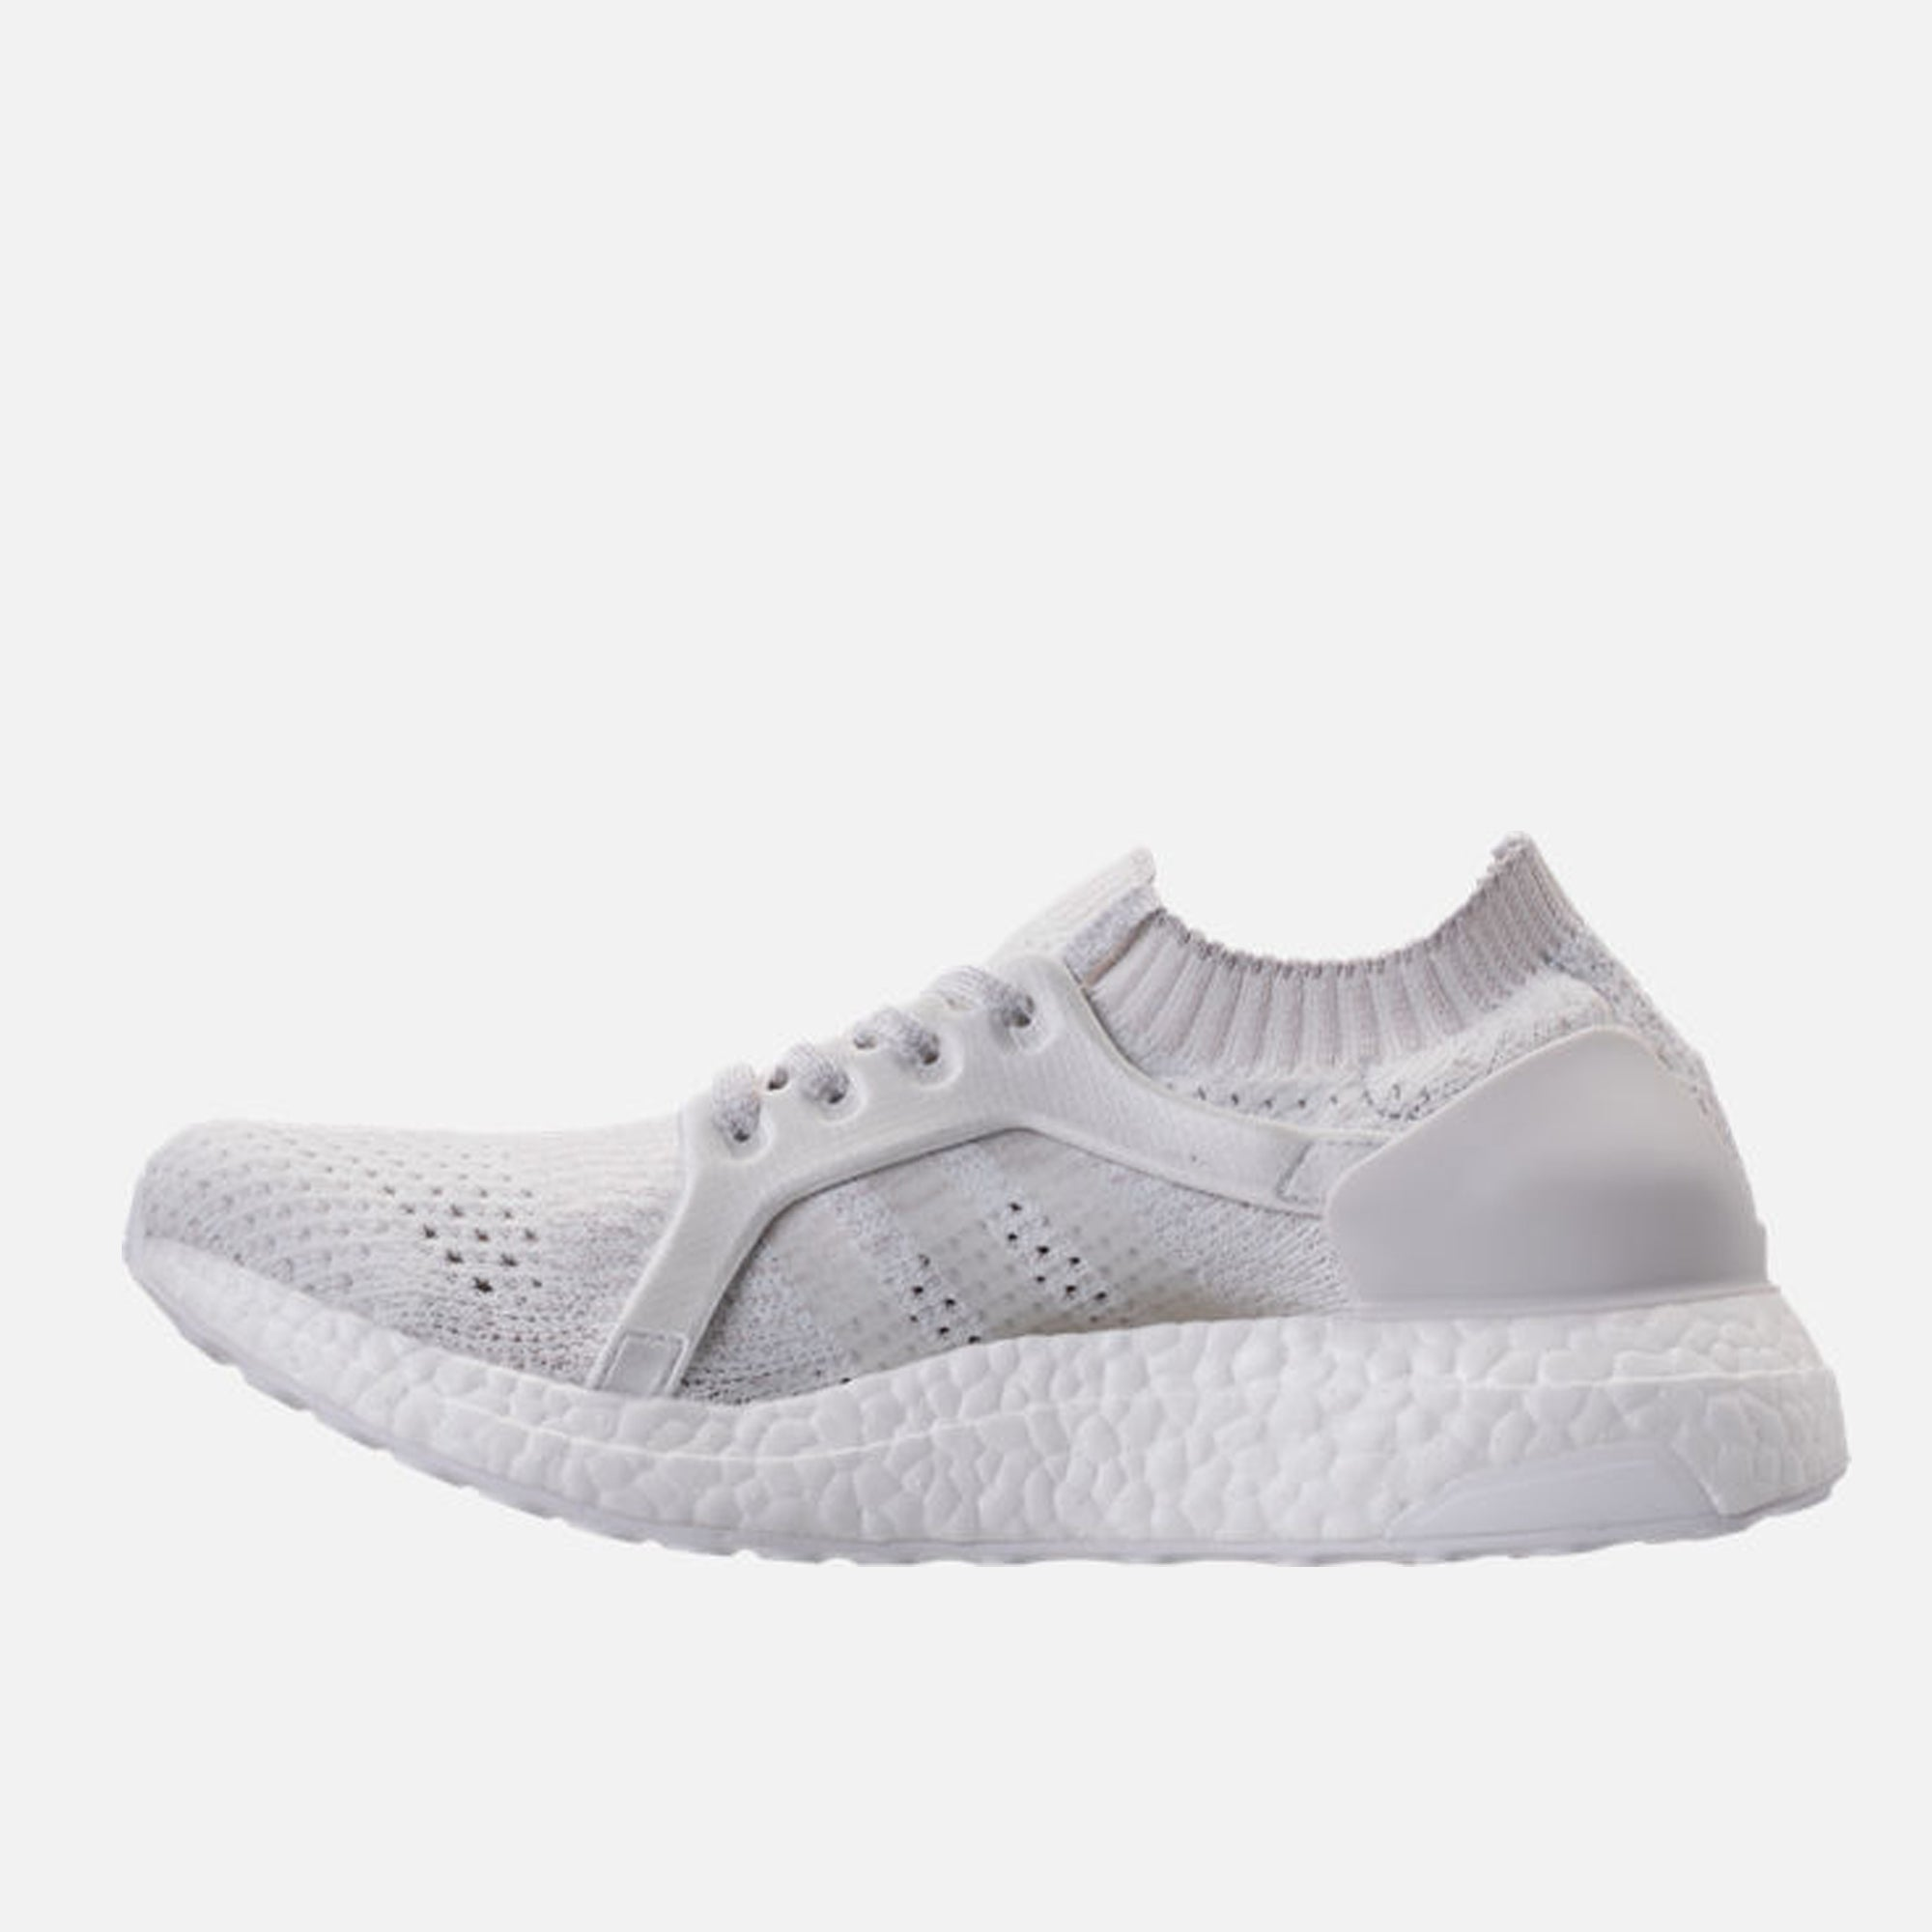 7914b67c0539d Women s Adidas Ultraboost X Running shoes Footwear White Crystal White Grey  -